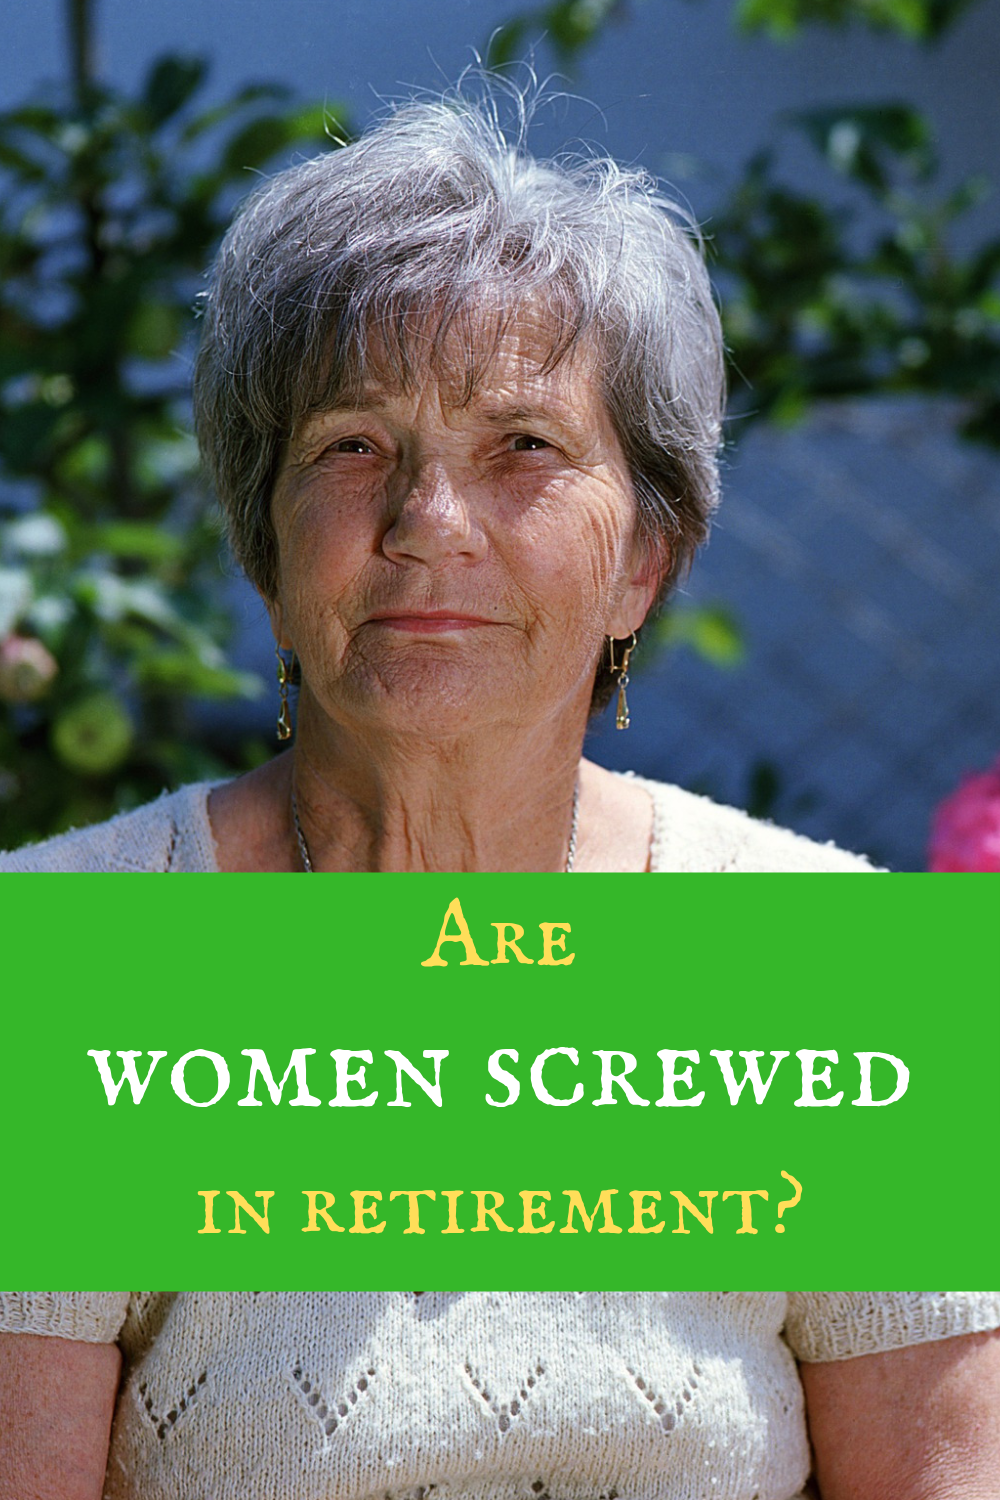 Women are in serious trouble in retirement!